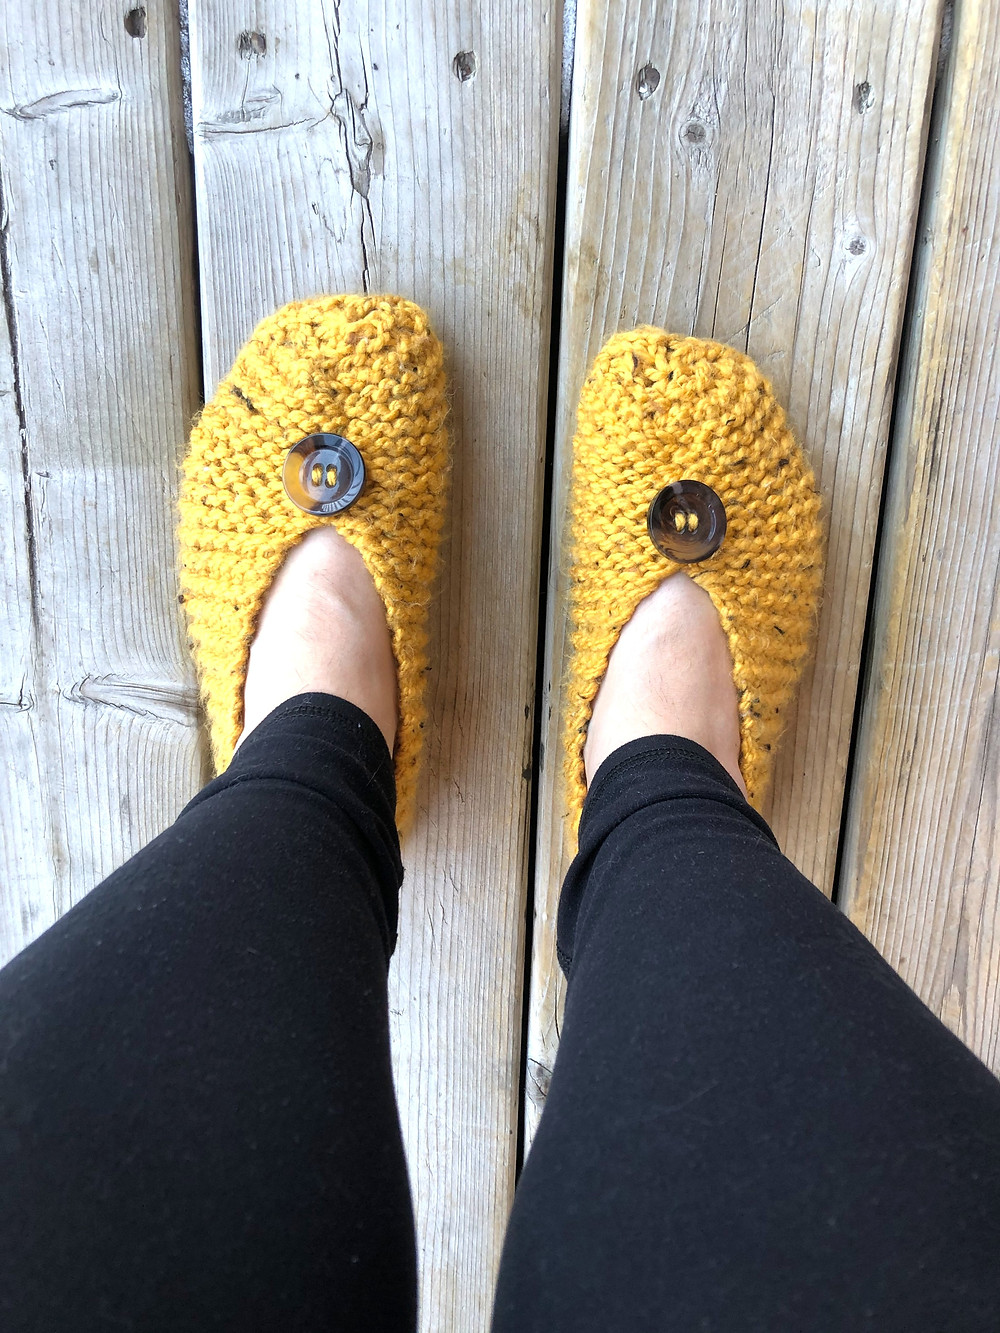 A pair of feet wearing yellow knit slippers against a wooden background.